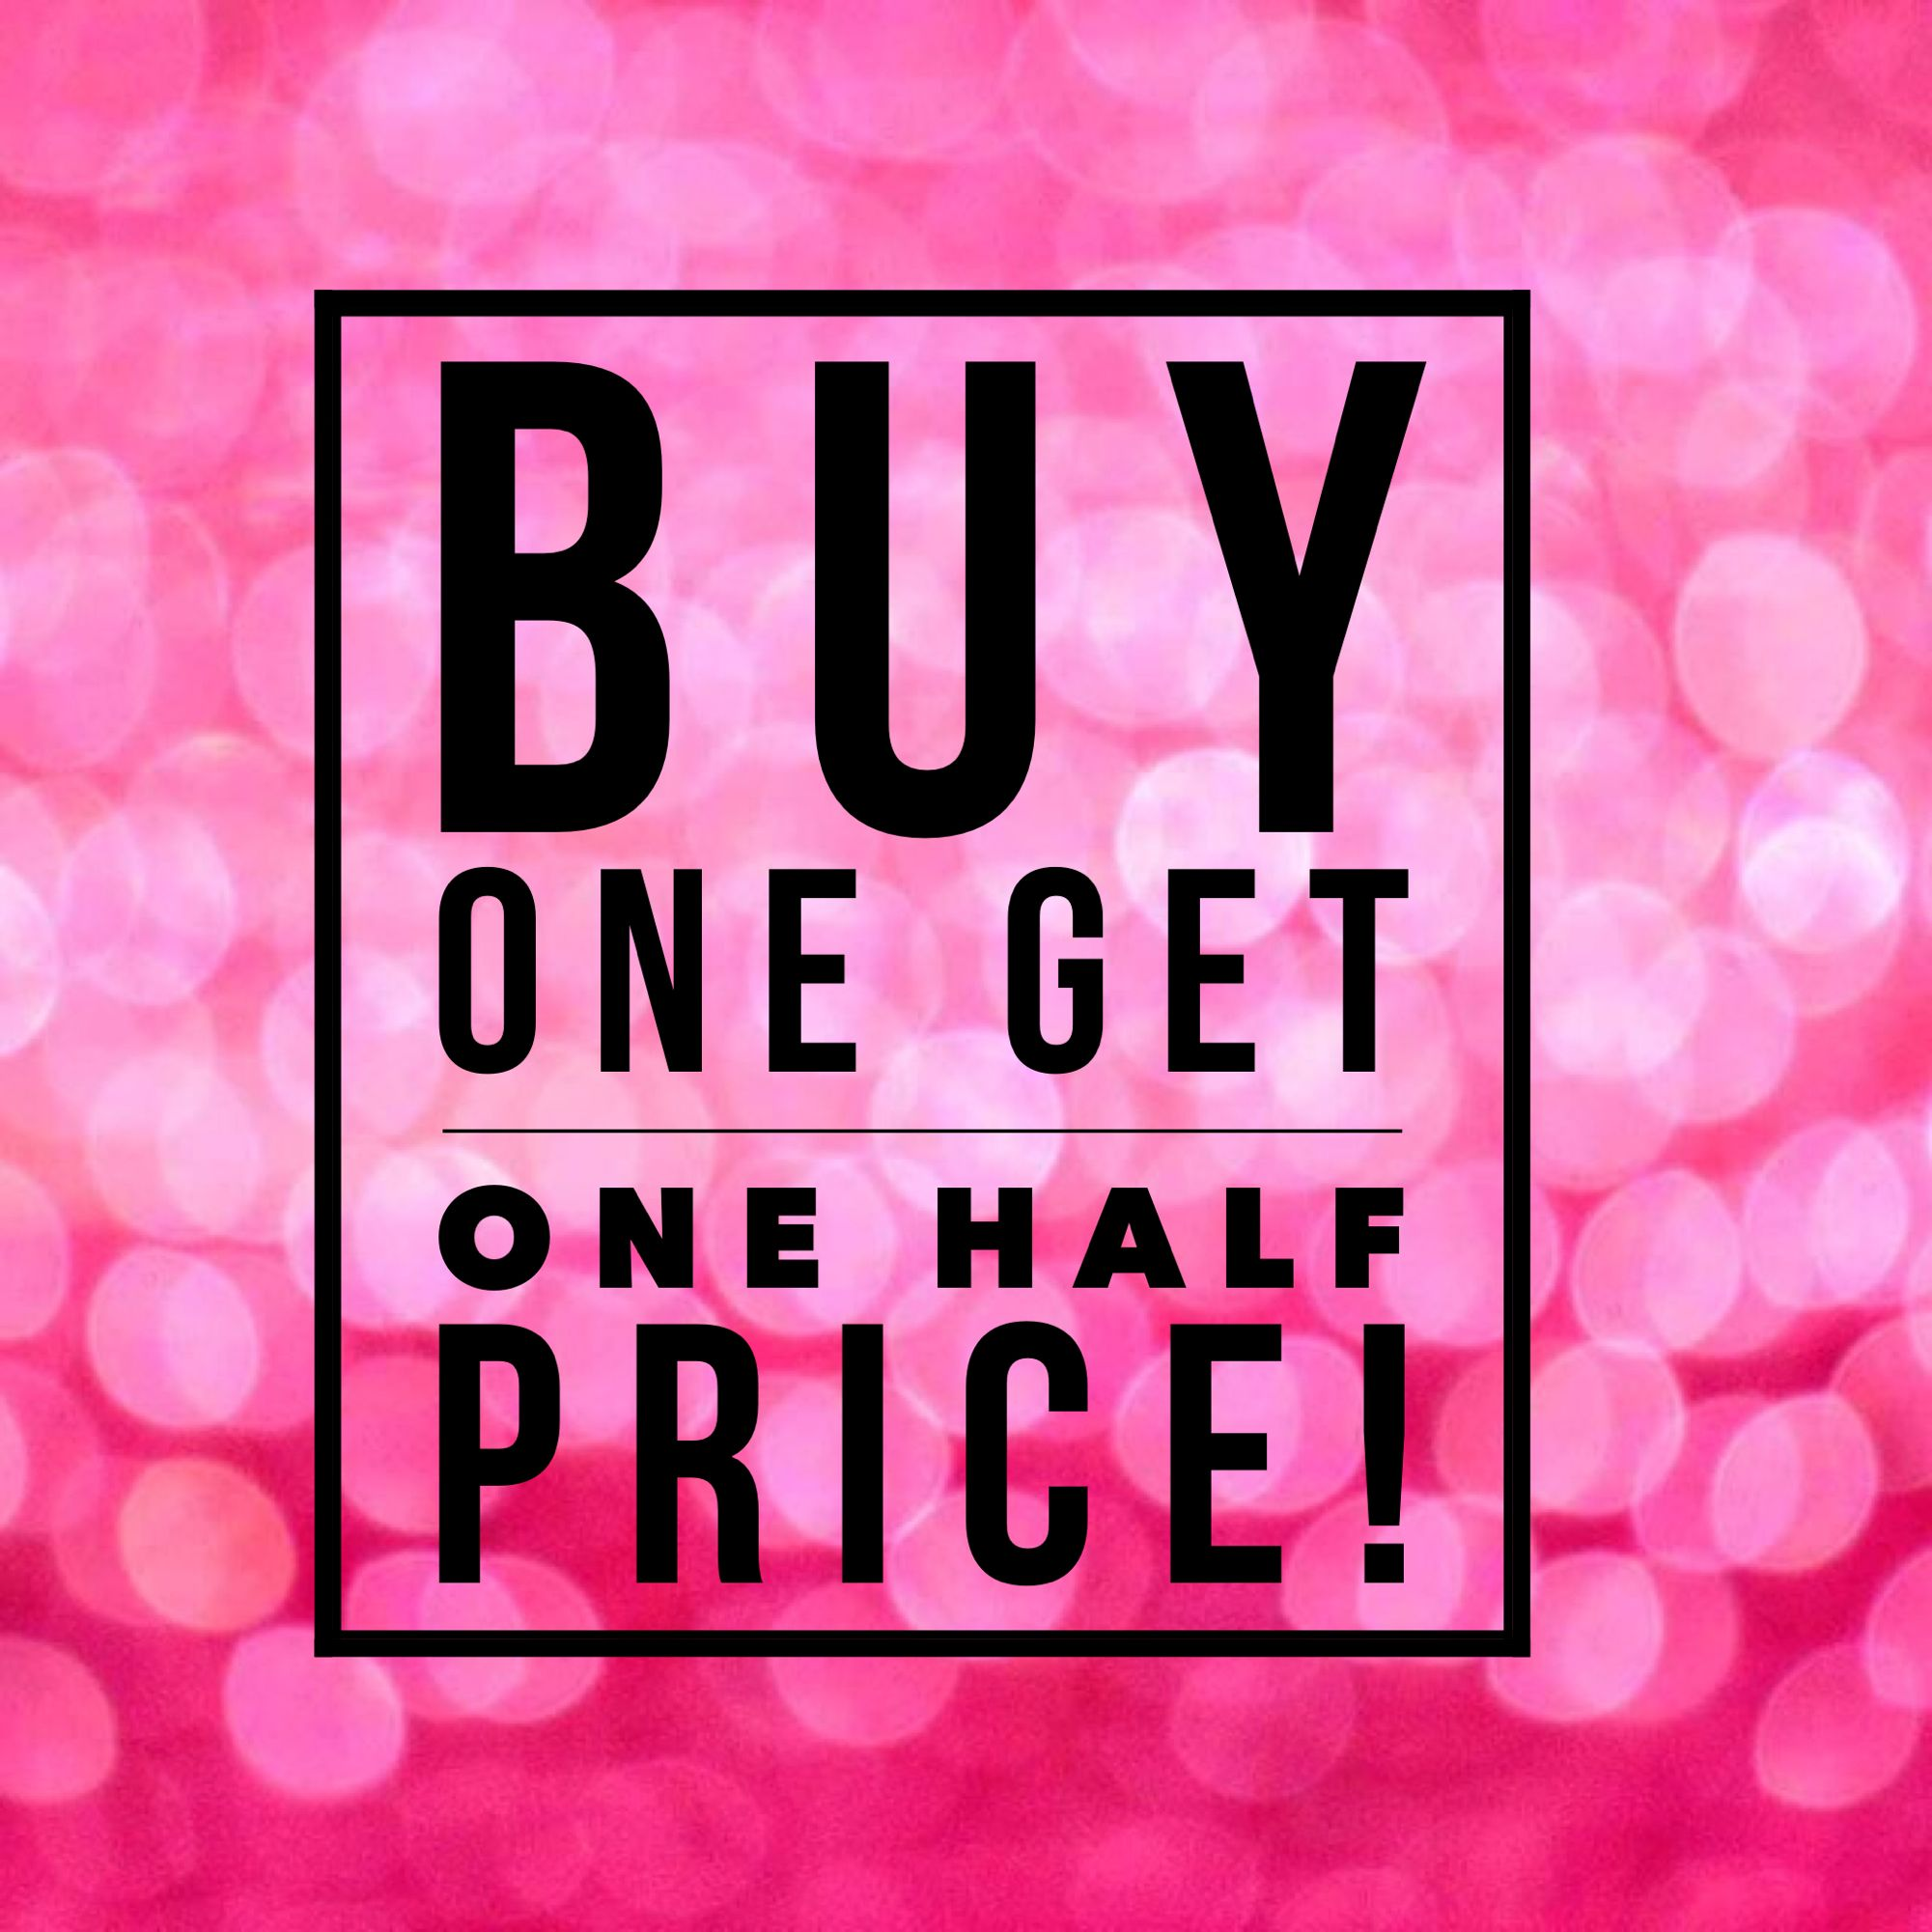 4495bffd8a Buy one get one half price   Premier parties   Stuff to buy, Buy one ...